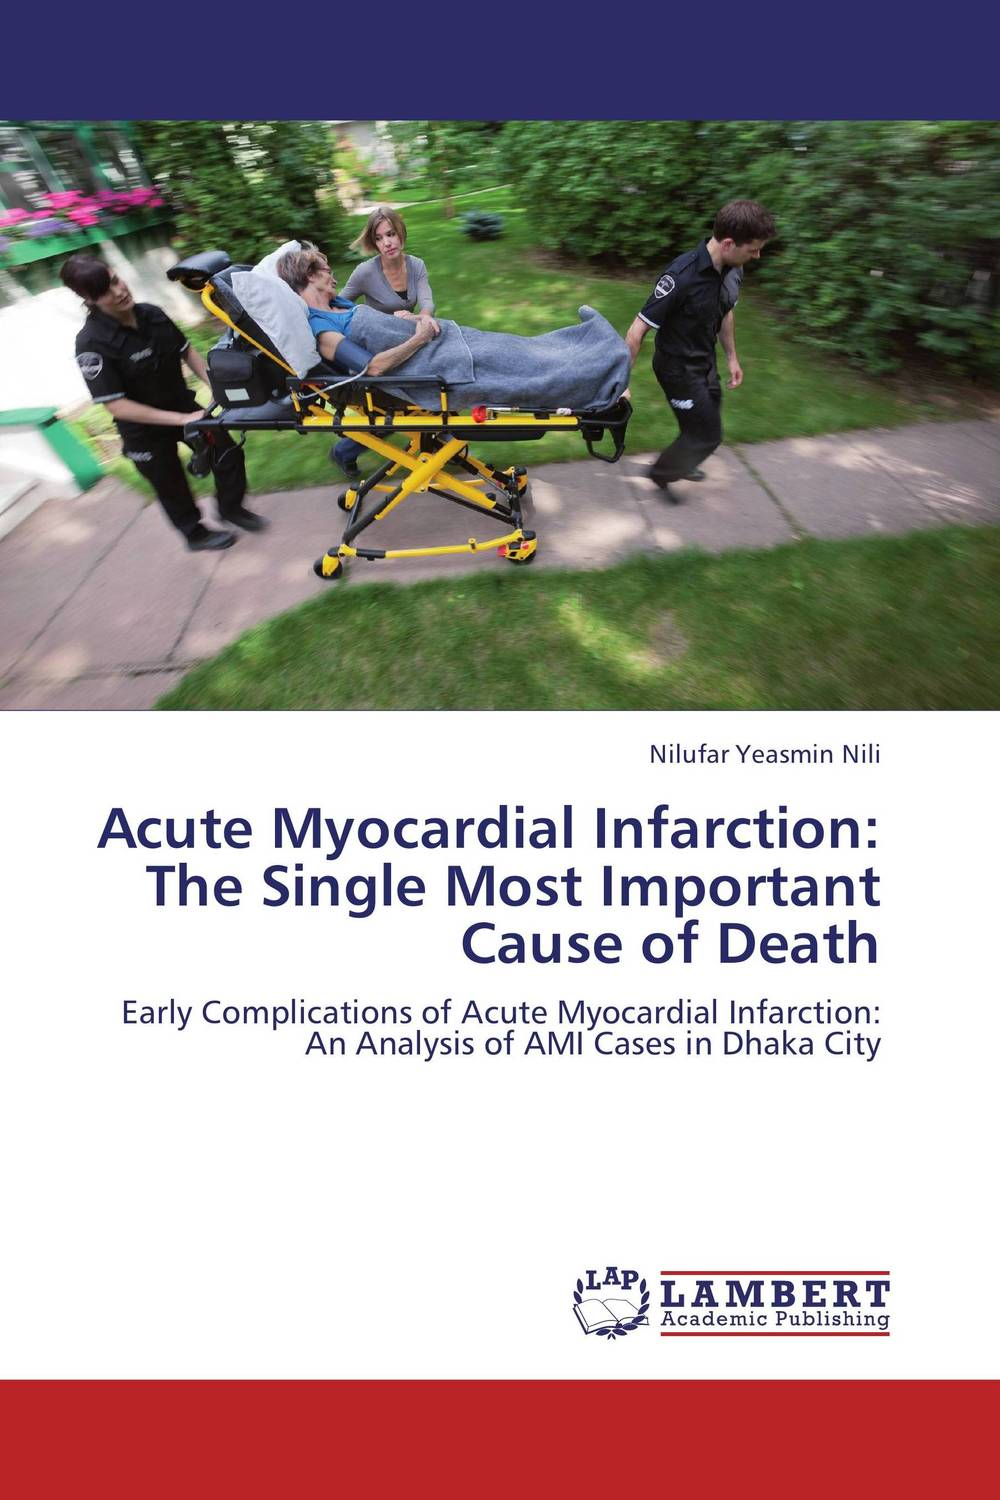 Acute Myocardial Infarction: The Single Most Important Cause of Death metabolic syndrome in patients with acute myocardial infarction